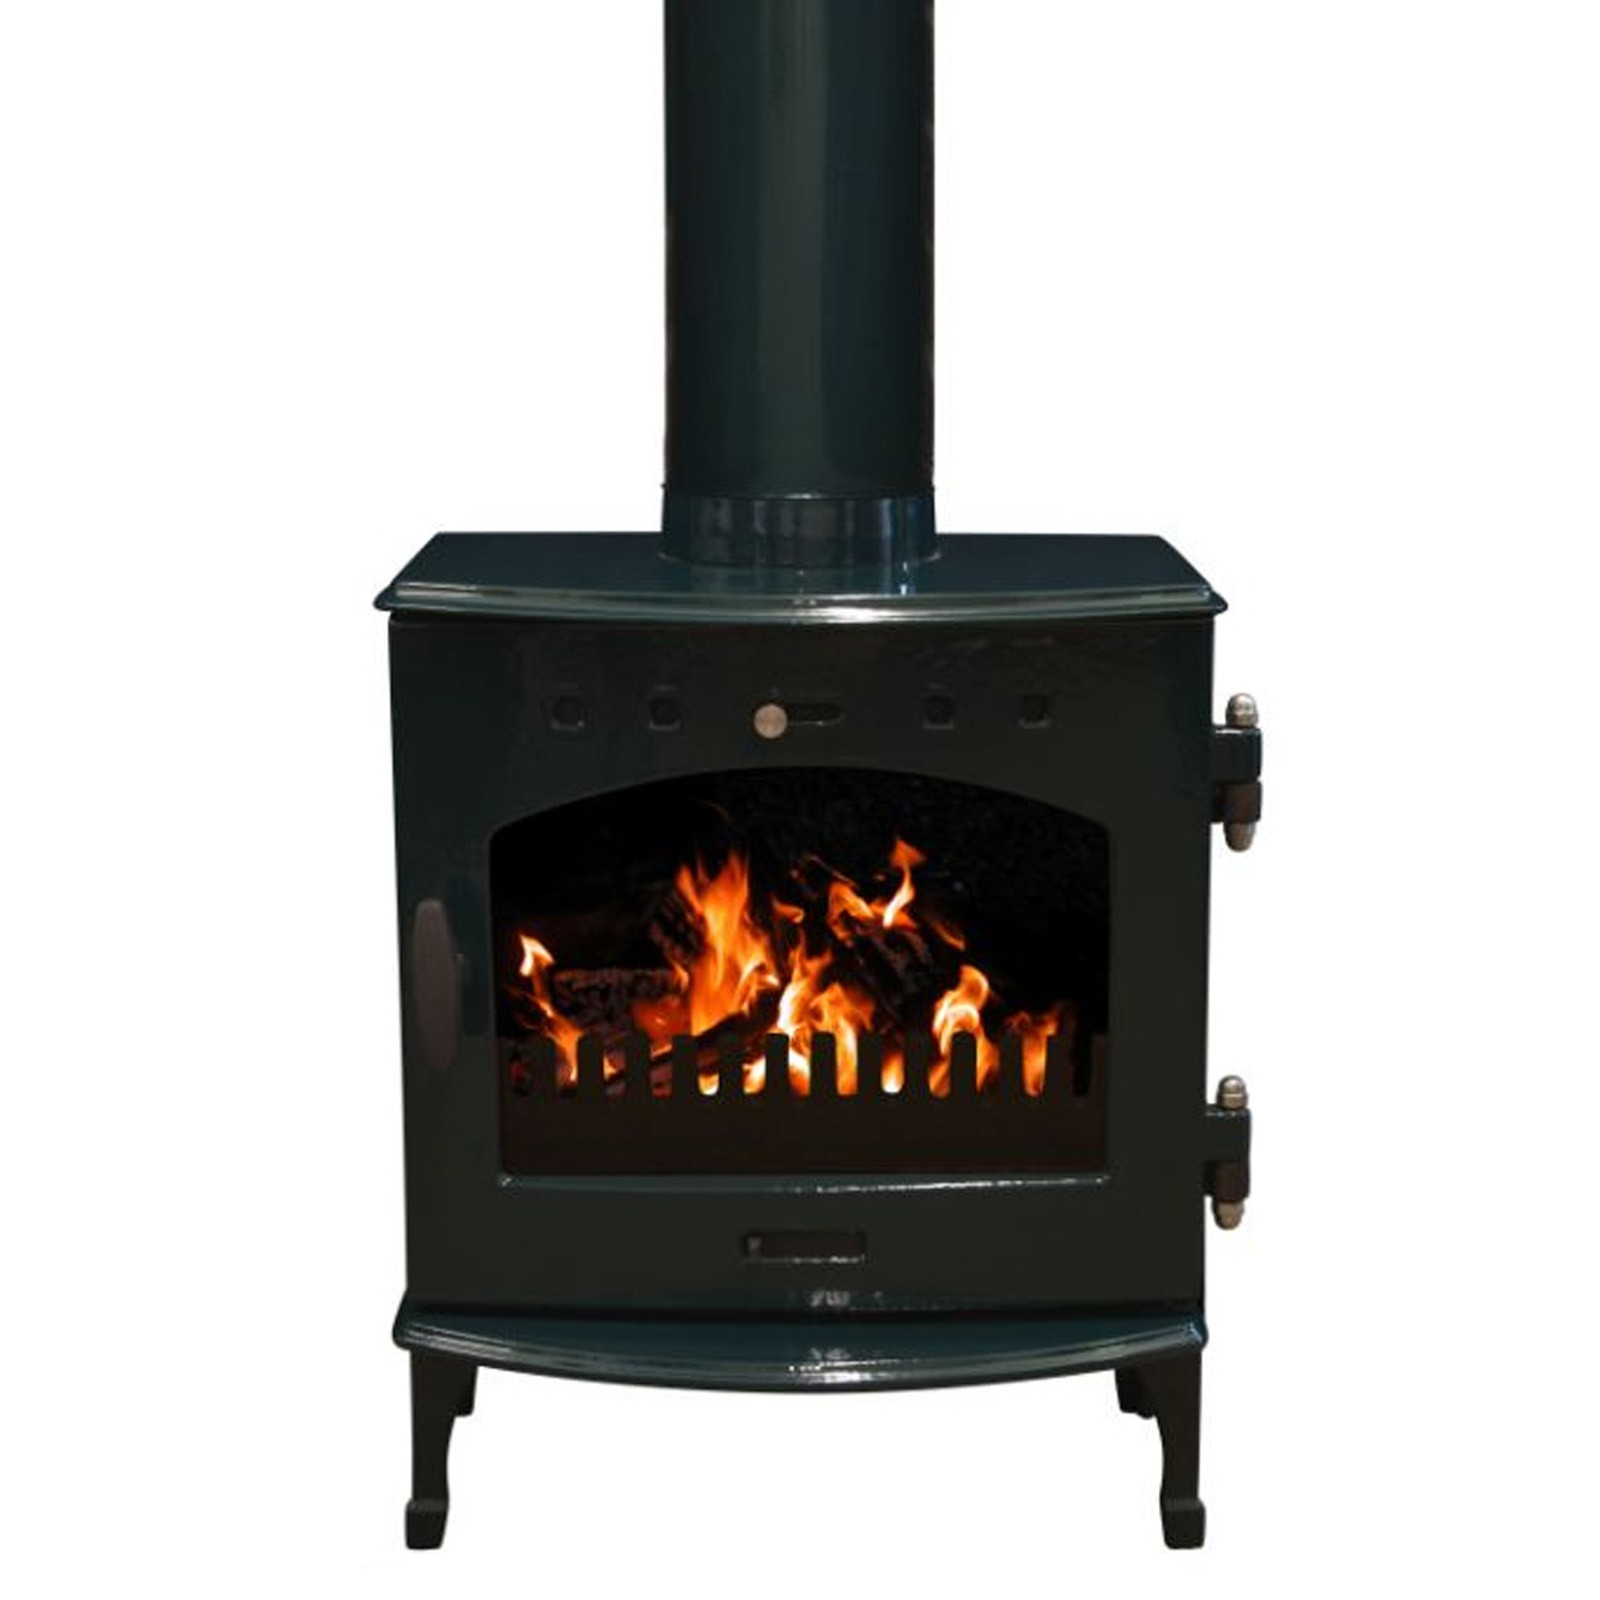 wood fireplace small gas guys deluxe item approved napoleon stove stoves burning log black epa